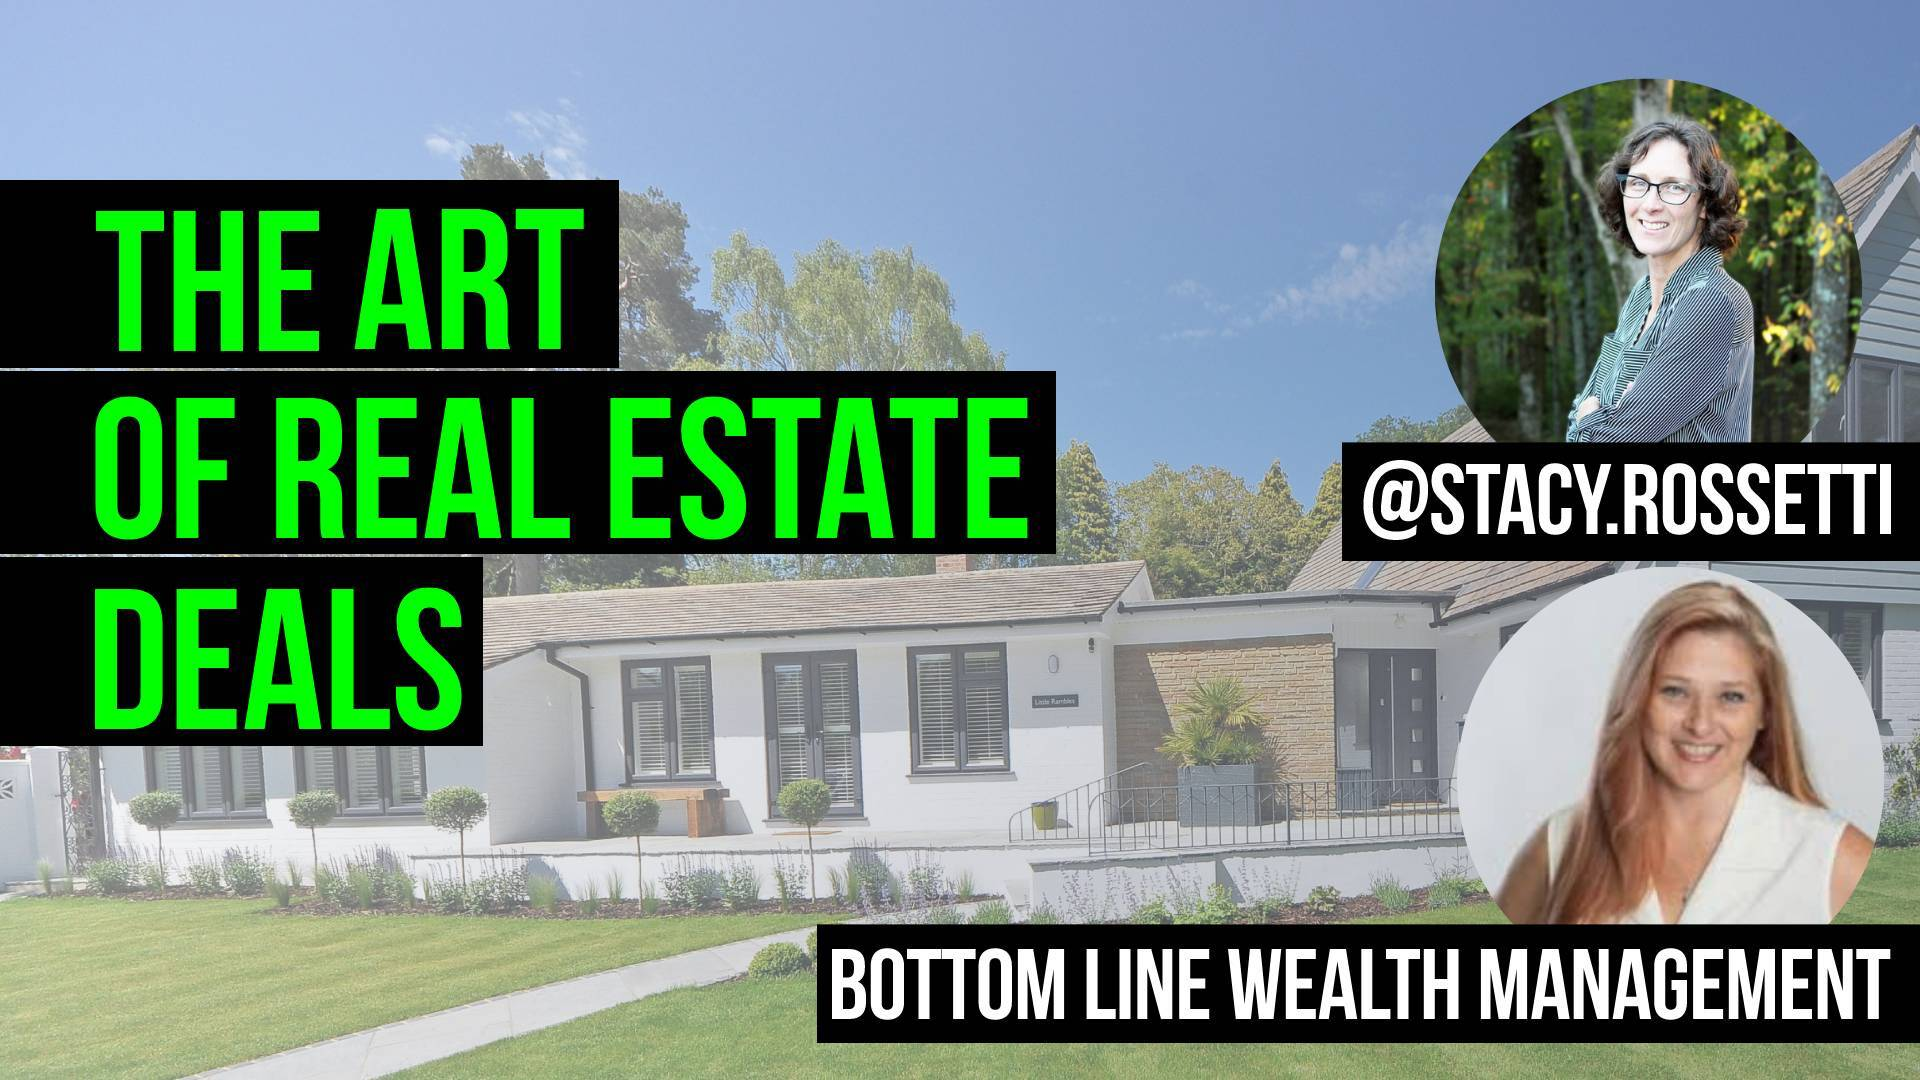 youtube thumbnail, text reads: the art of real estate deals